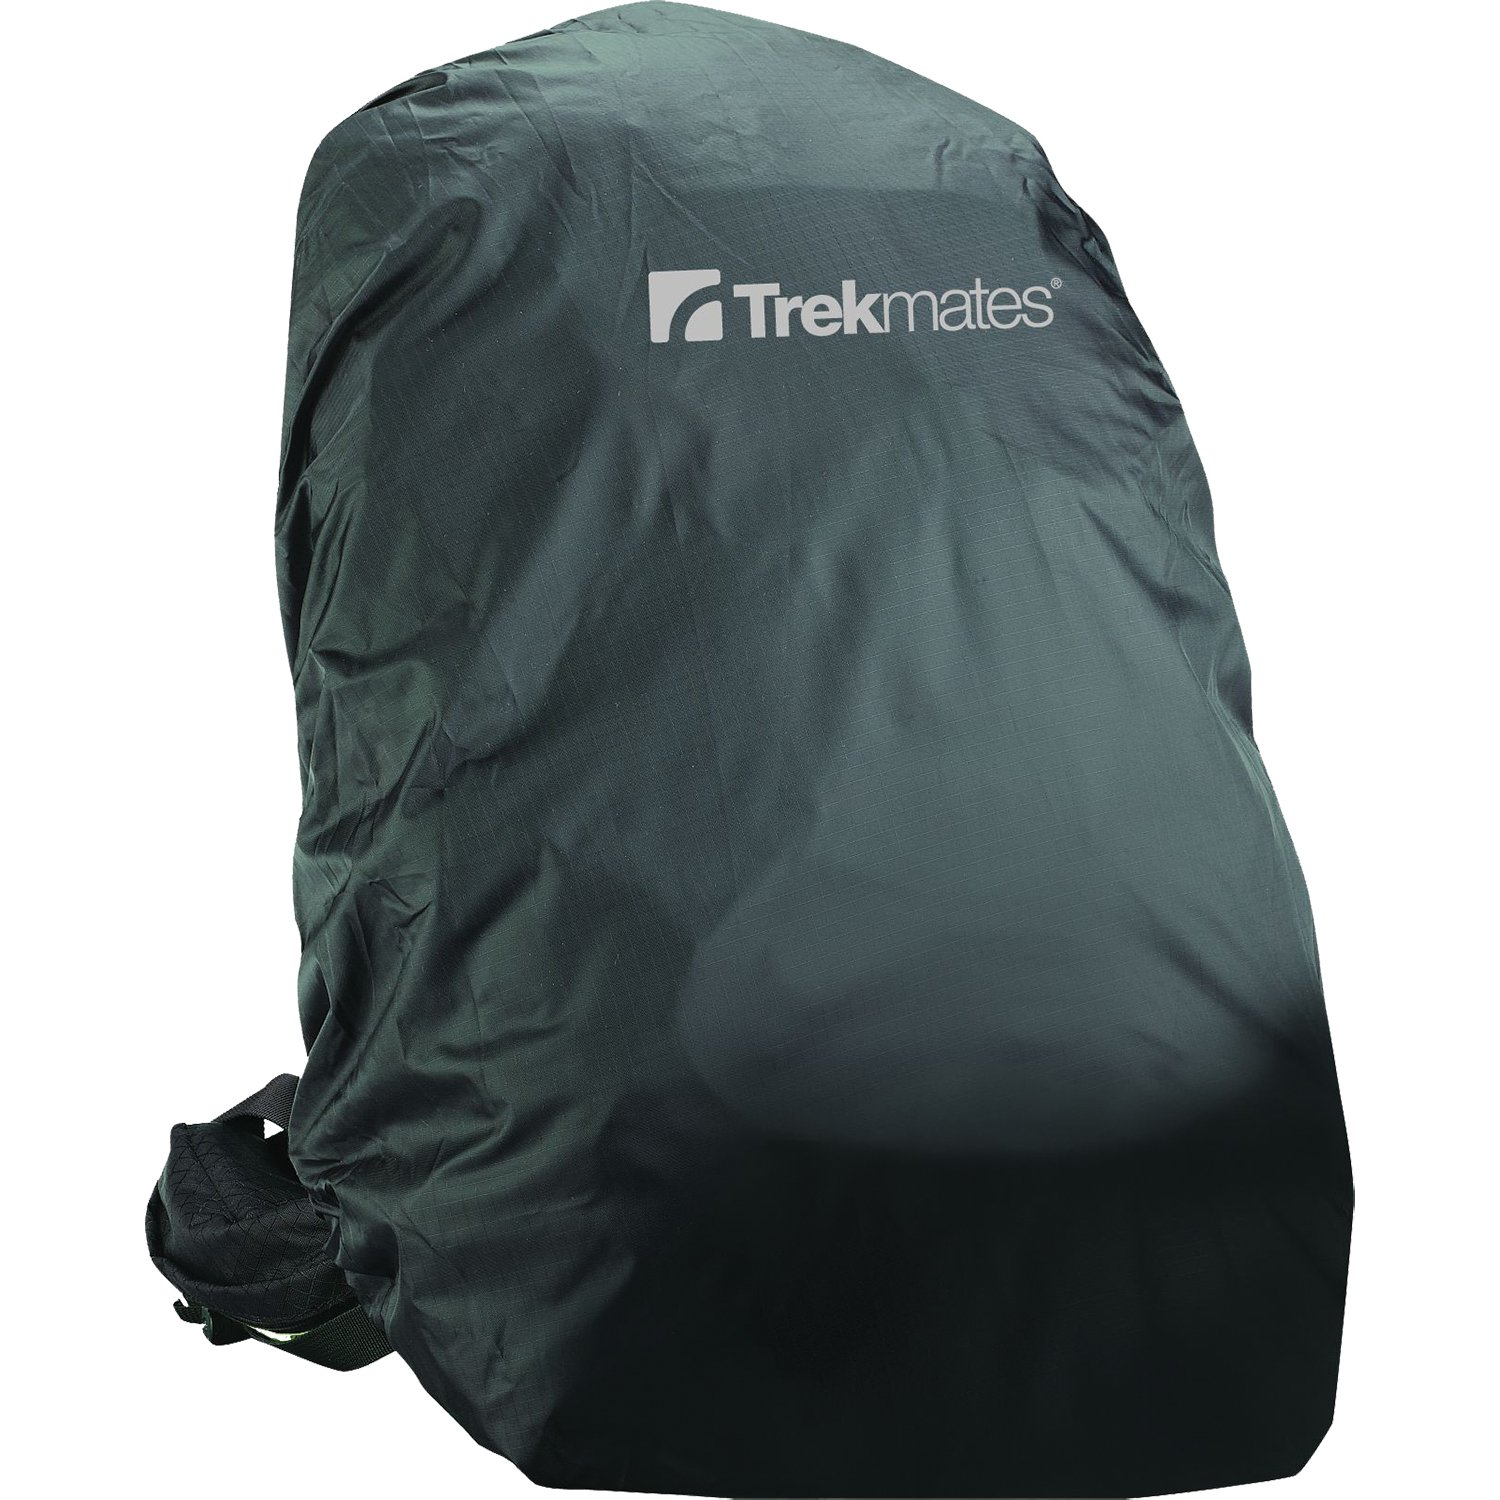 Trekmates Backpack Raincover L - Protector Impermeable para Mochila hasta 85 litros 16030